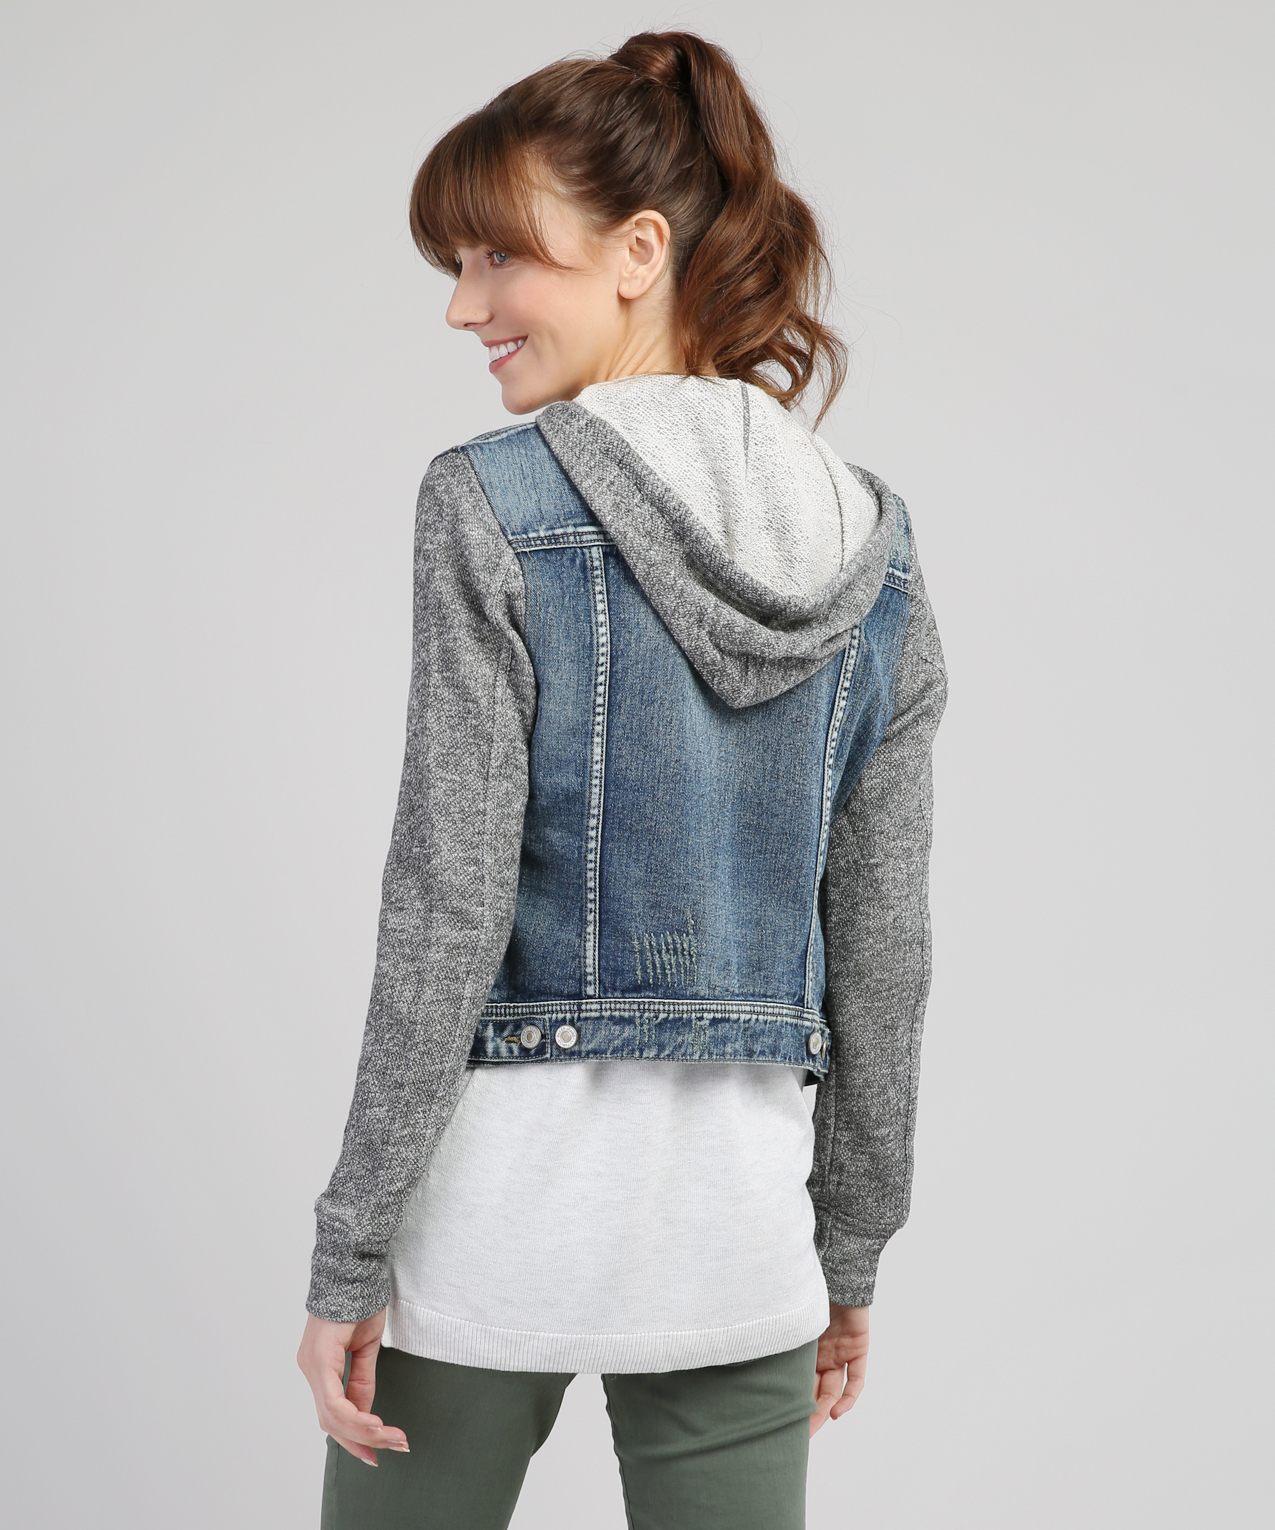 278cc9c2e79cad ... knit denim jacket